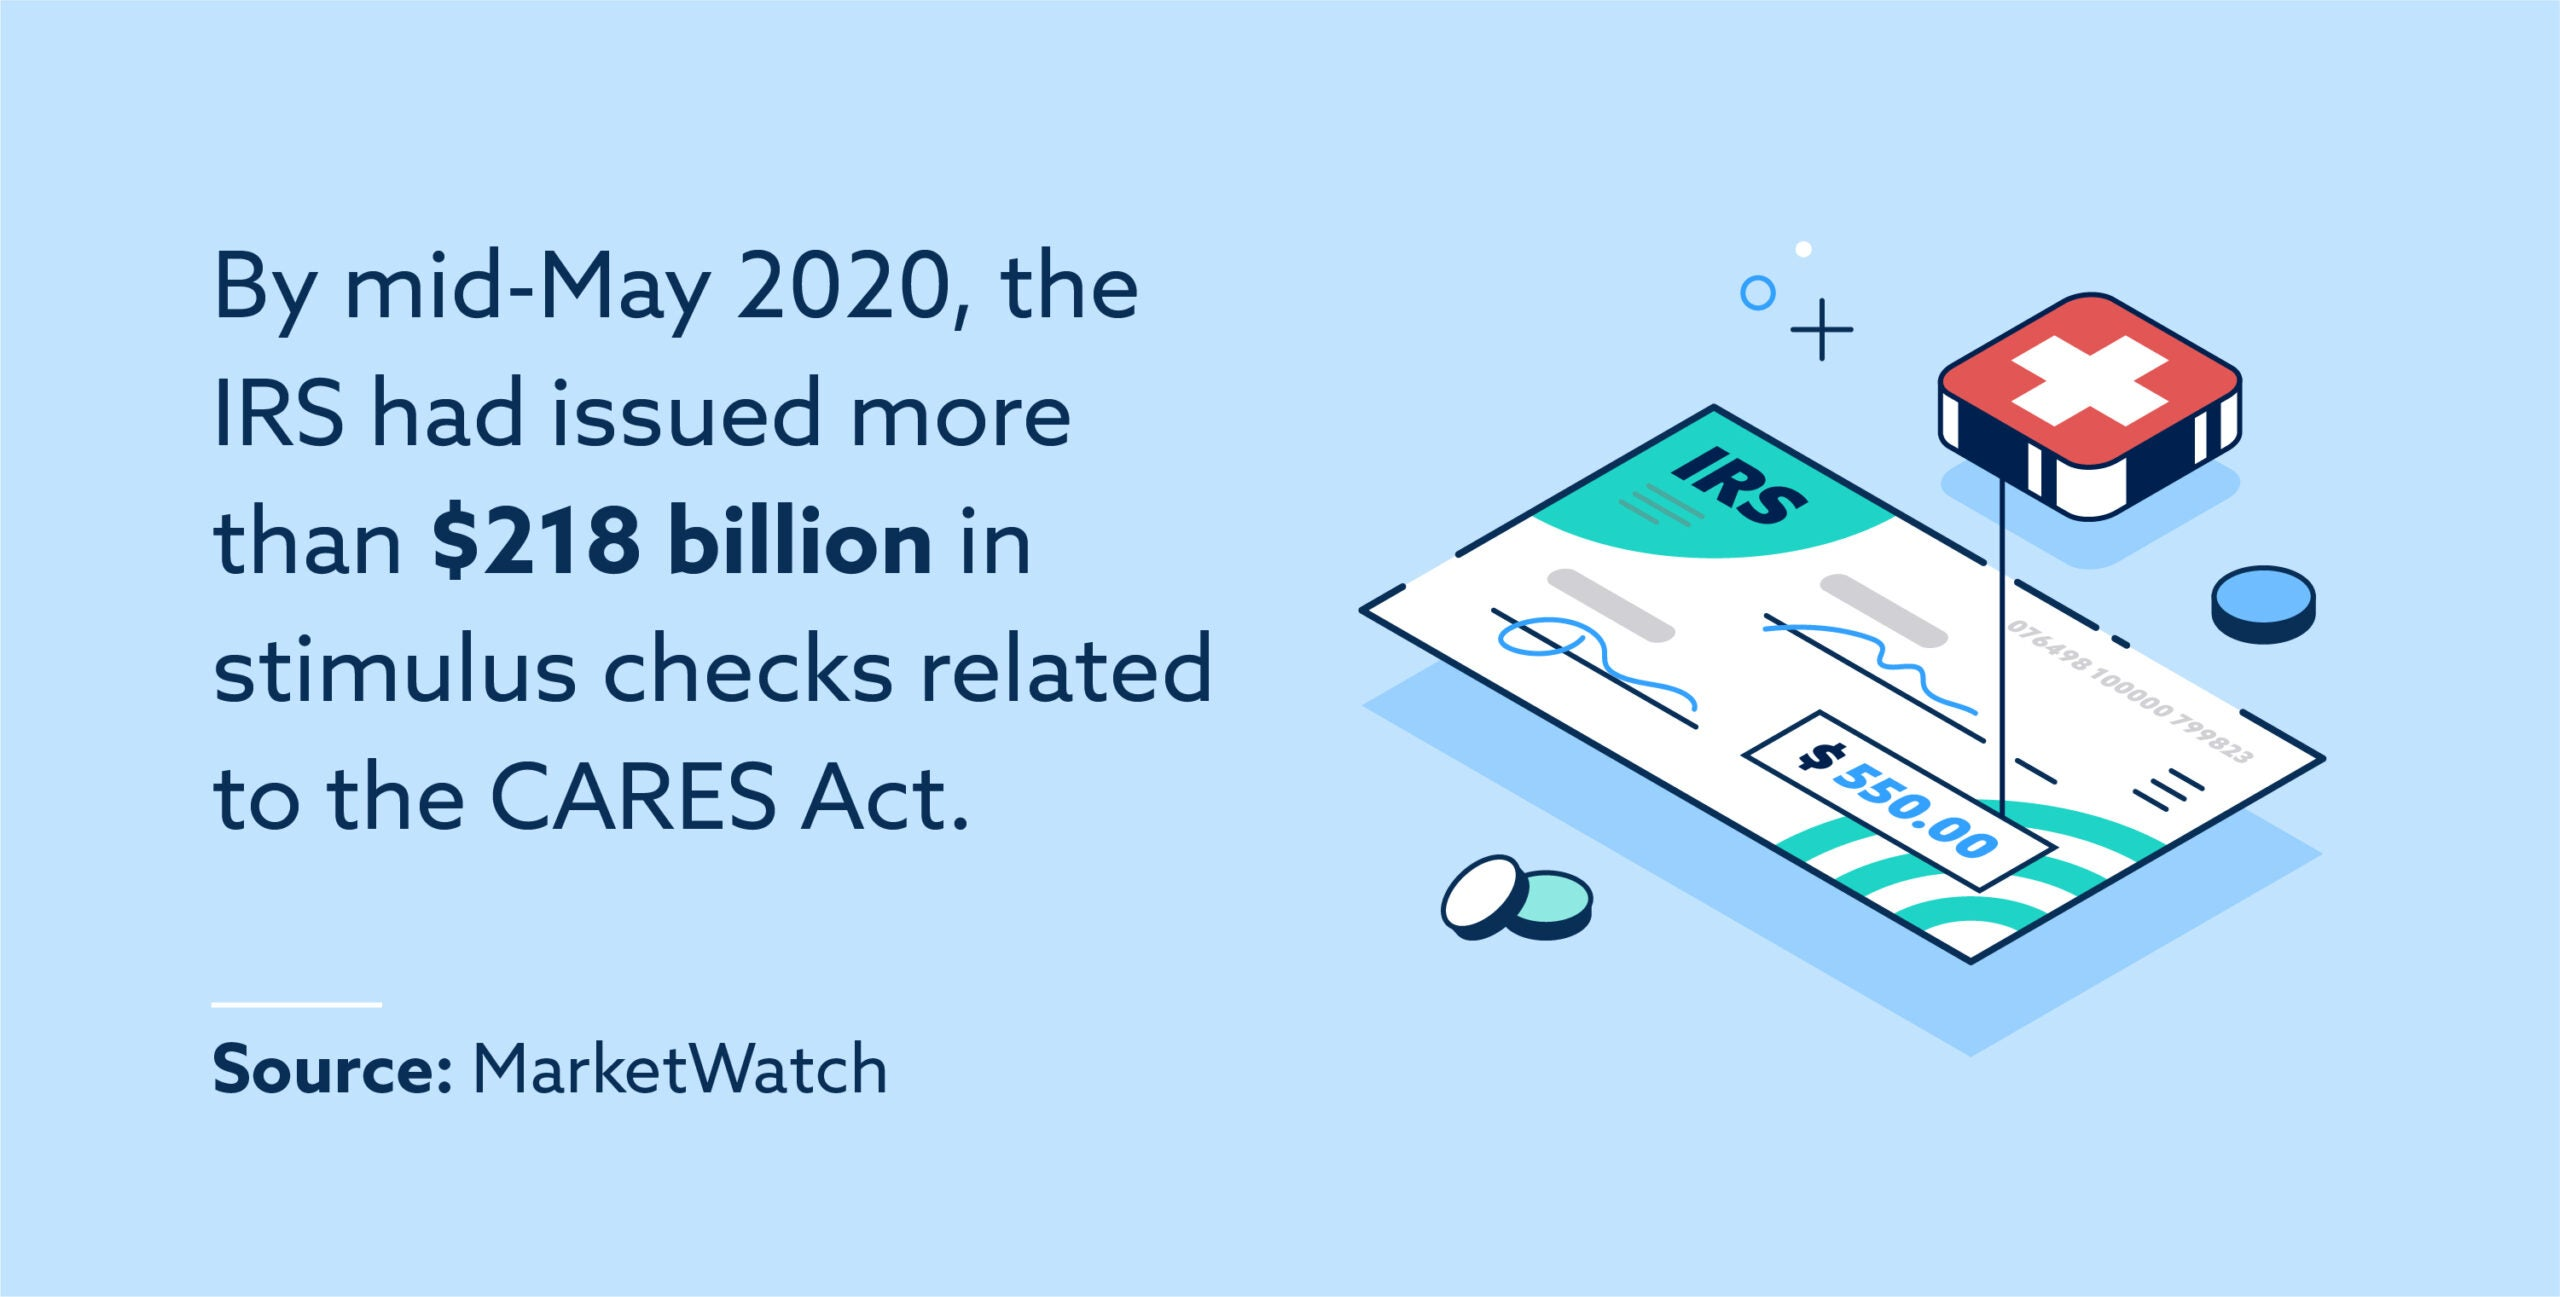 By mid-May 2020, the IRS had issued more than $218 billion in stimulus checks related to the CARES Act.